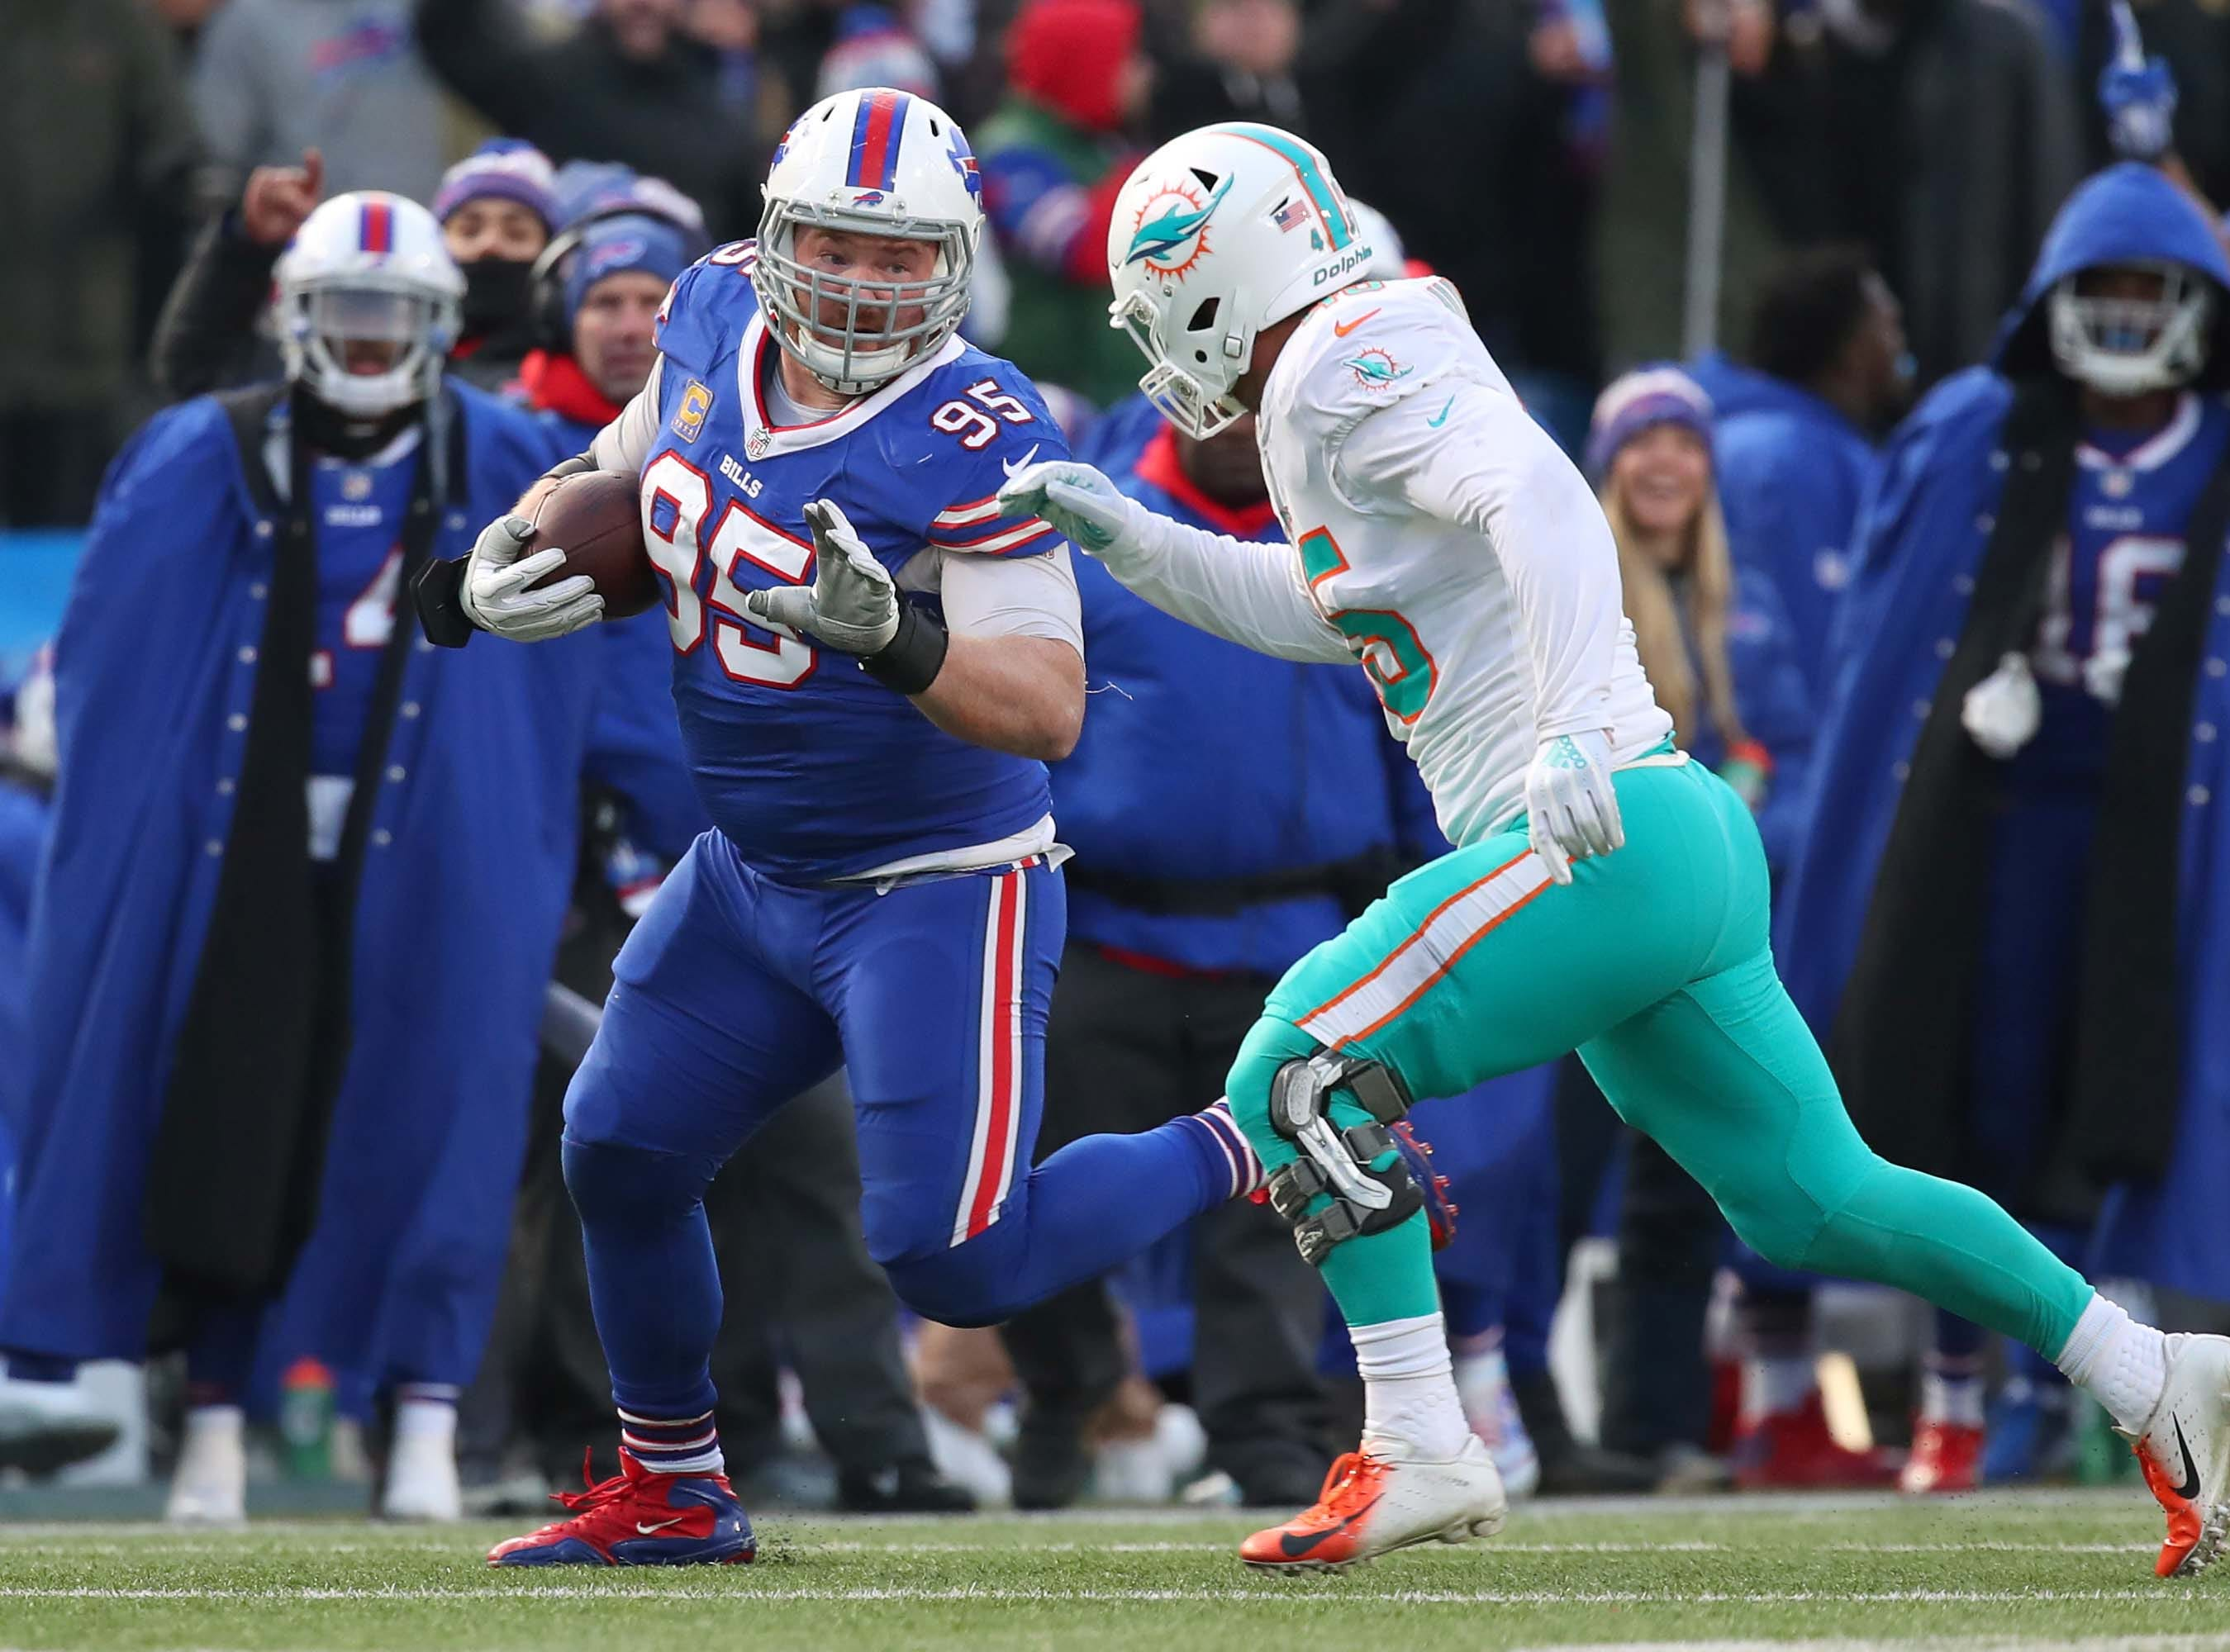 Dec 30, 2018; Orchard Park, NY, USA; Buffalo Bills defensive tackle Kyle Williams (95) runs with the ball after a catch as Miami Dolphins linebacker Mike Hull (45) defends during the fourth quarter at New Era Field. Mandatory Credit: Rich Barnes-USA TODAY Sports